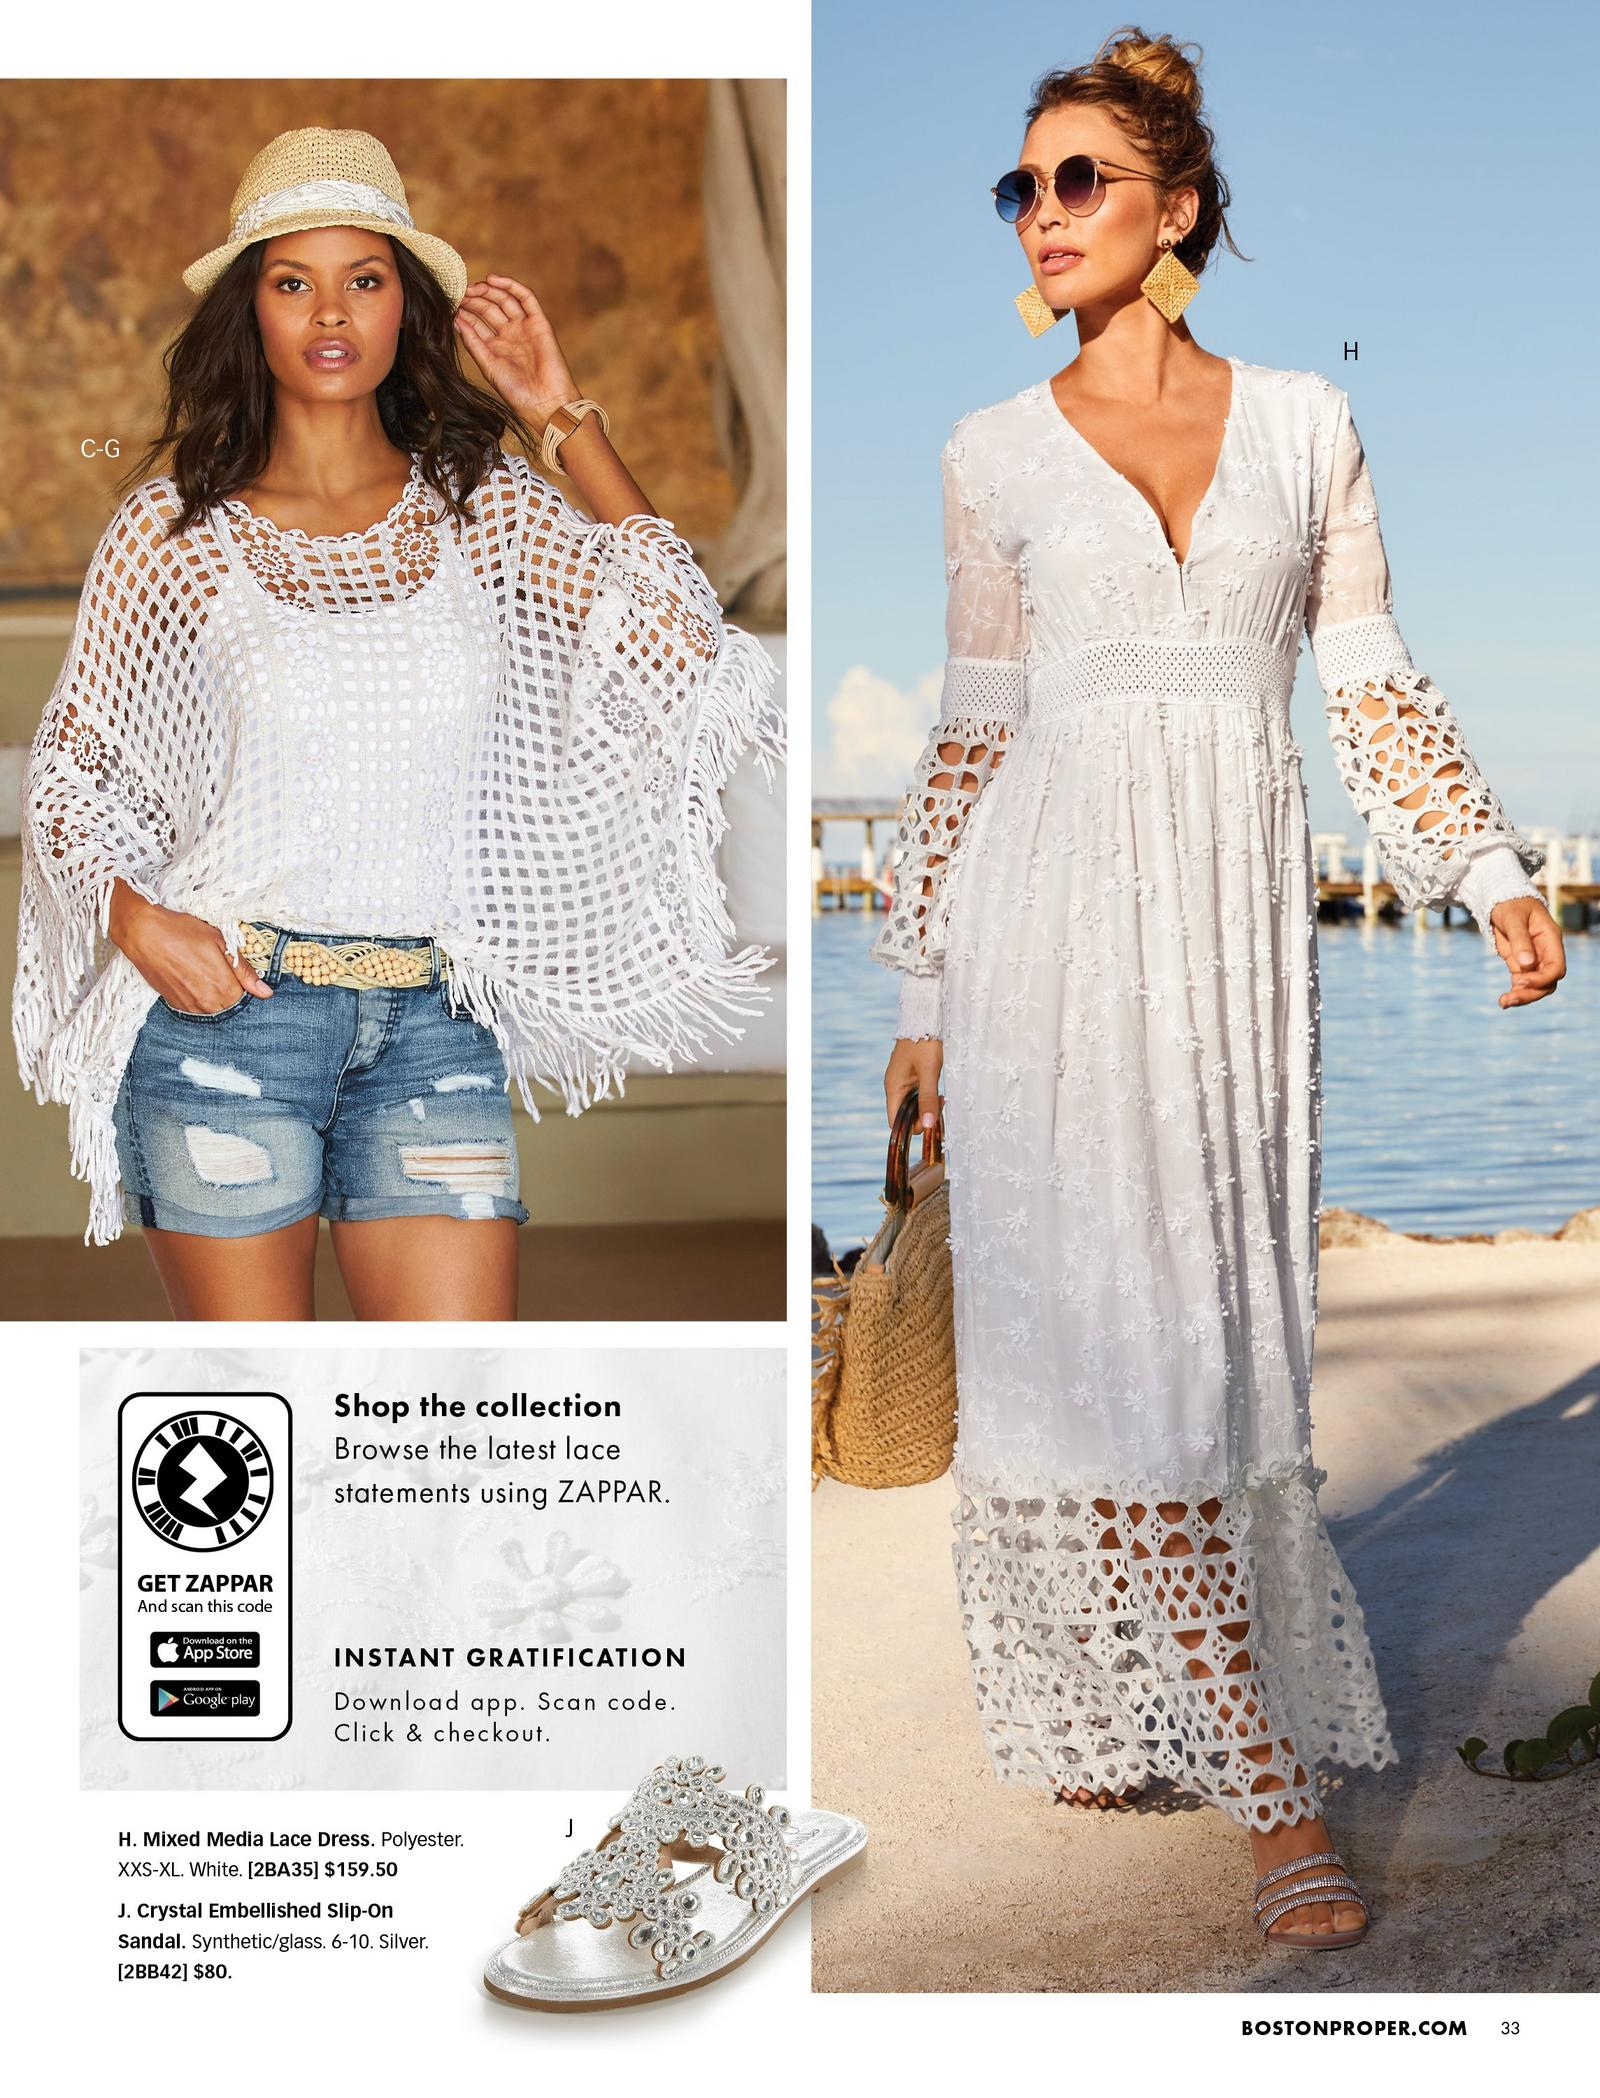 left model wearing a white crochet poncho, white tank top, beige belt, ripped jean shorts, and white lace embellished straw hat. right model wearing a white long-sleeve lace v-neck maxi dress and sunglasses. also shown: silver jeweled slide sandals.